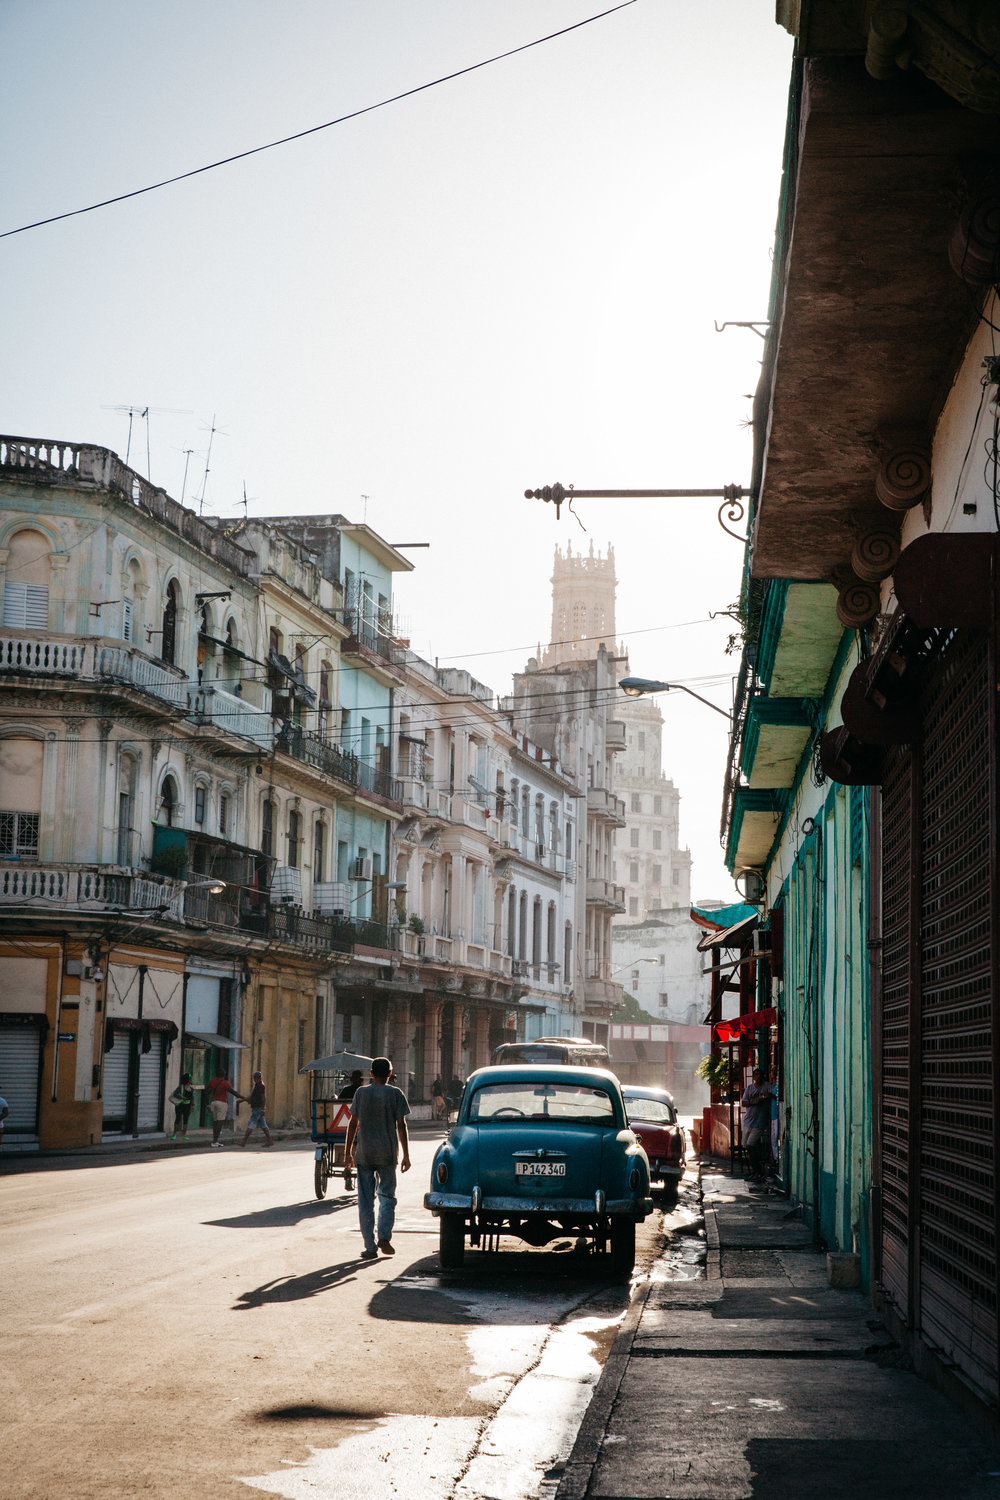 In Habana Vieja, Cuba by the Chinatown section with classic old cars.